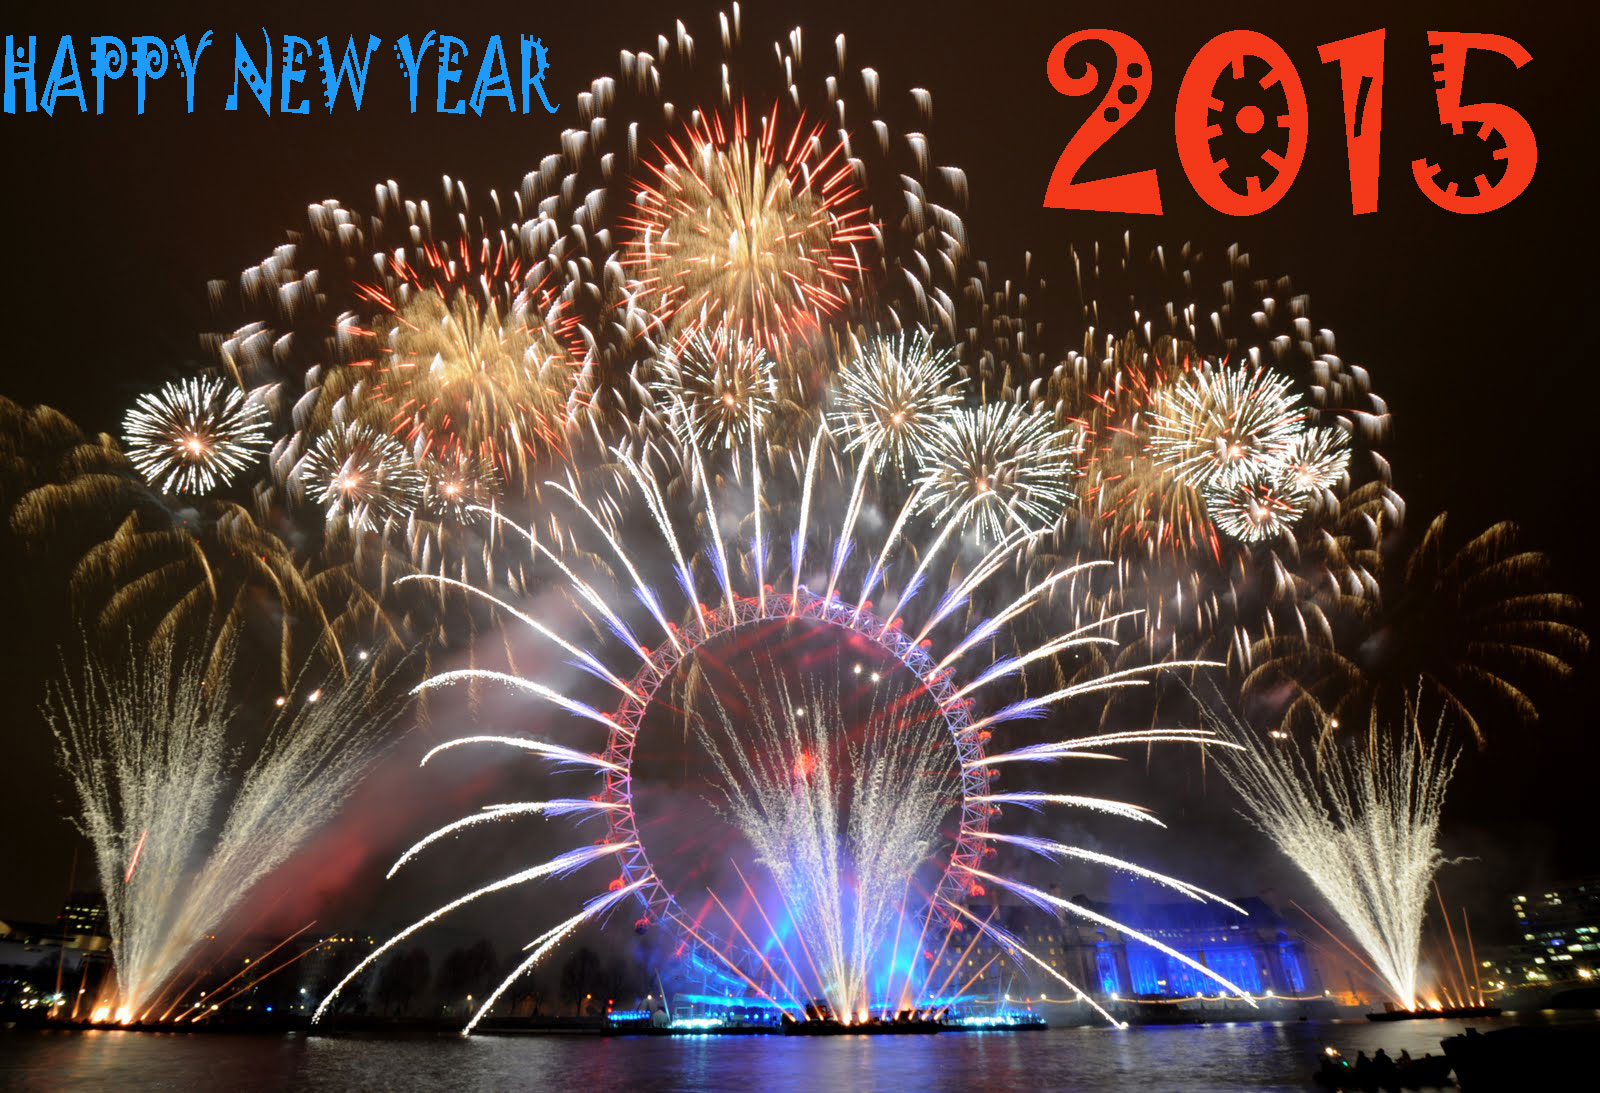 48] Happy New Year 2015 Pc Wallpaper on WallpaperSafari 1600x1093